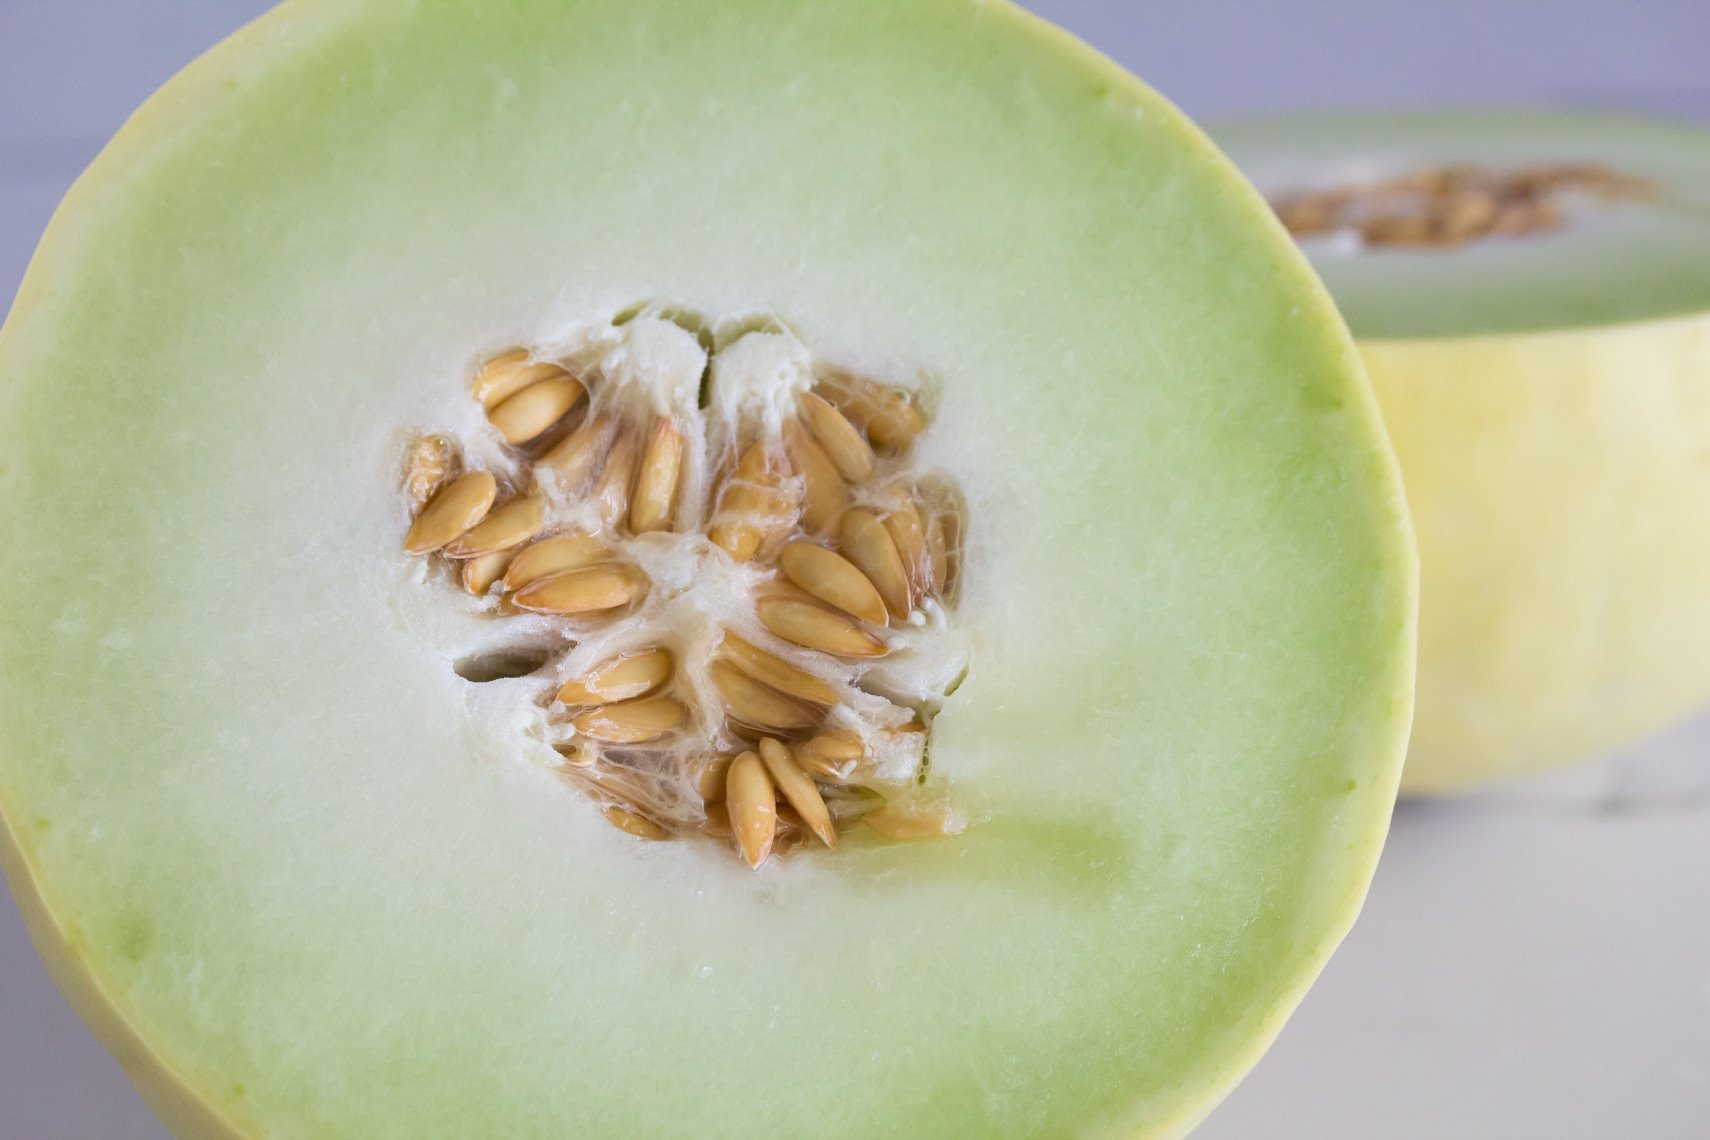 Cantaloupe Fodmap : More specifically, oligosaccharides include fructans and.